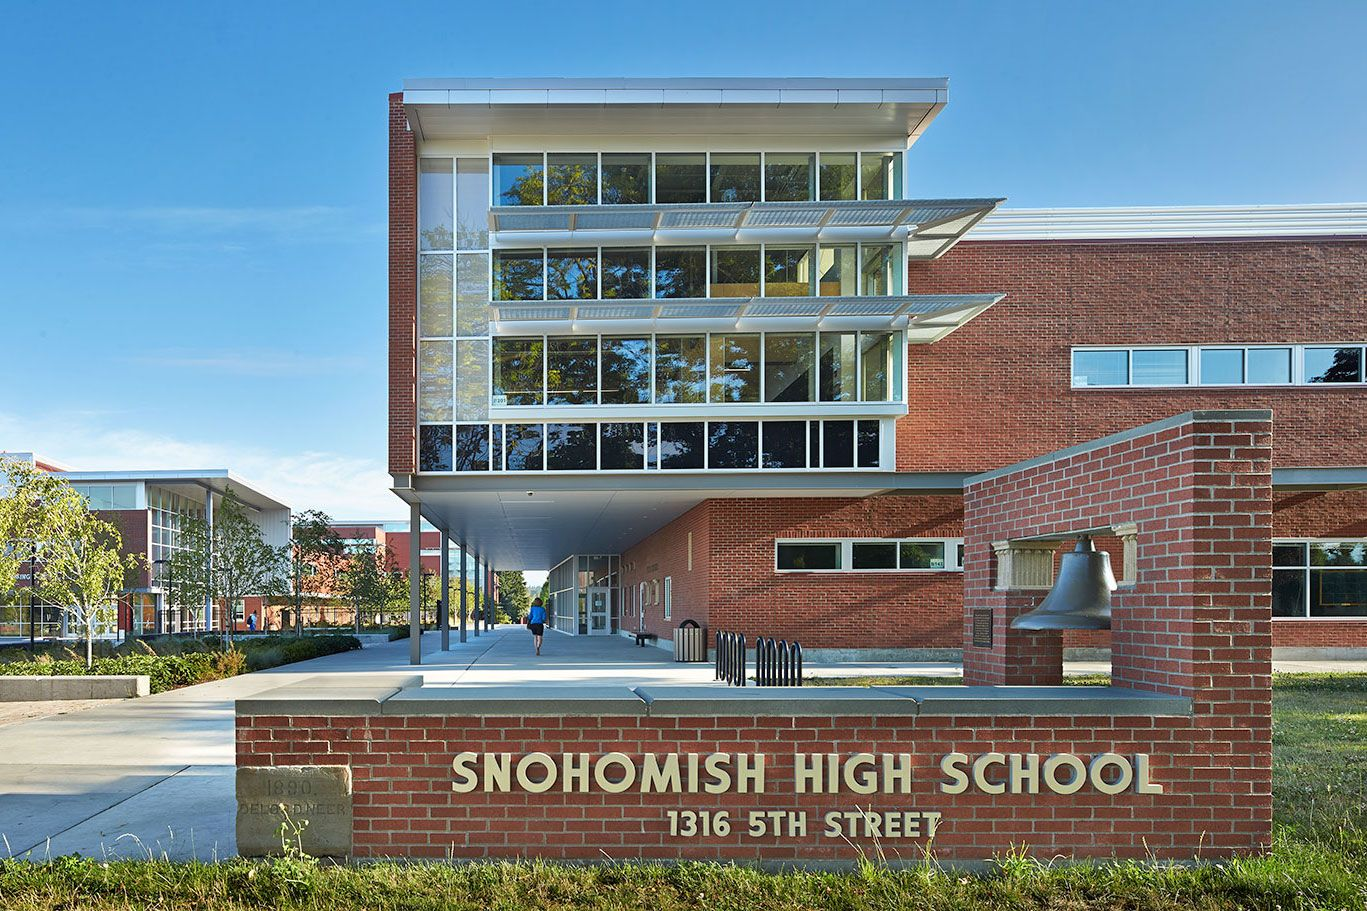 Snohomish High School, Snohomish School District   Snohomish, Washington    NAC|Architecture: